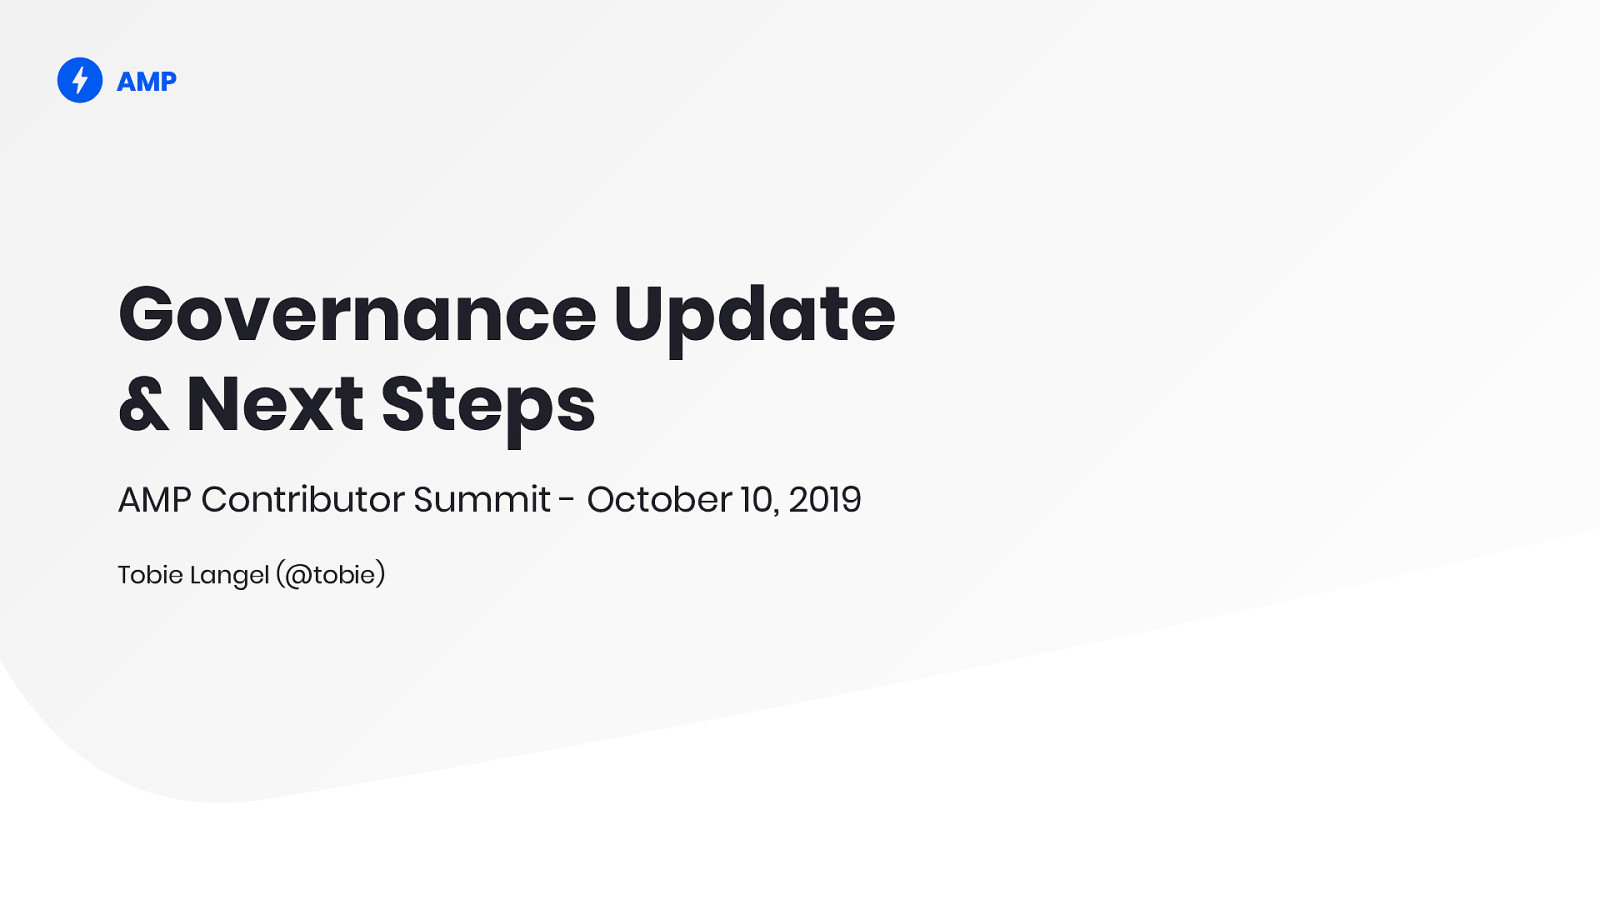 Governance Update & Next Steps